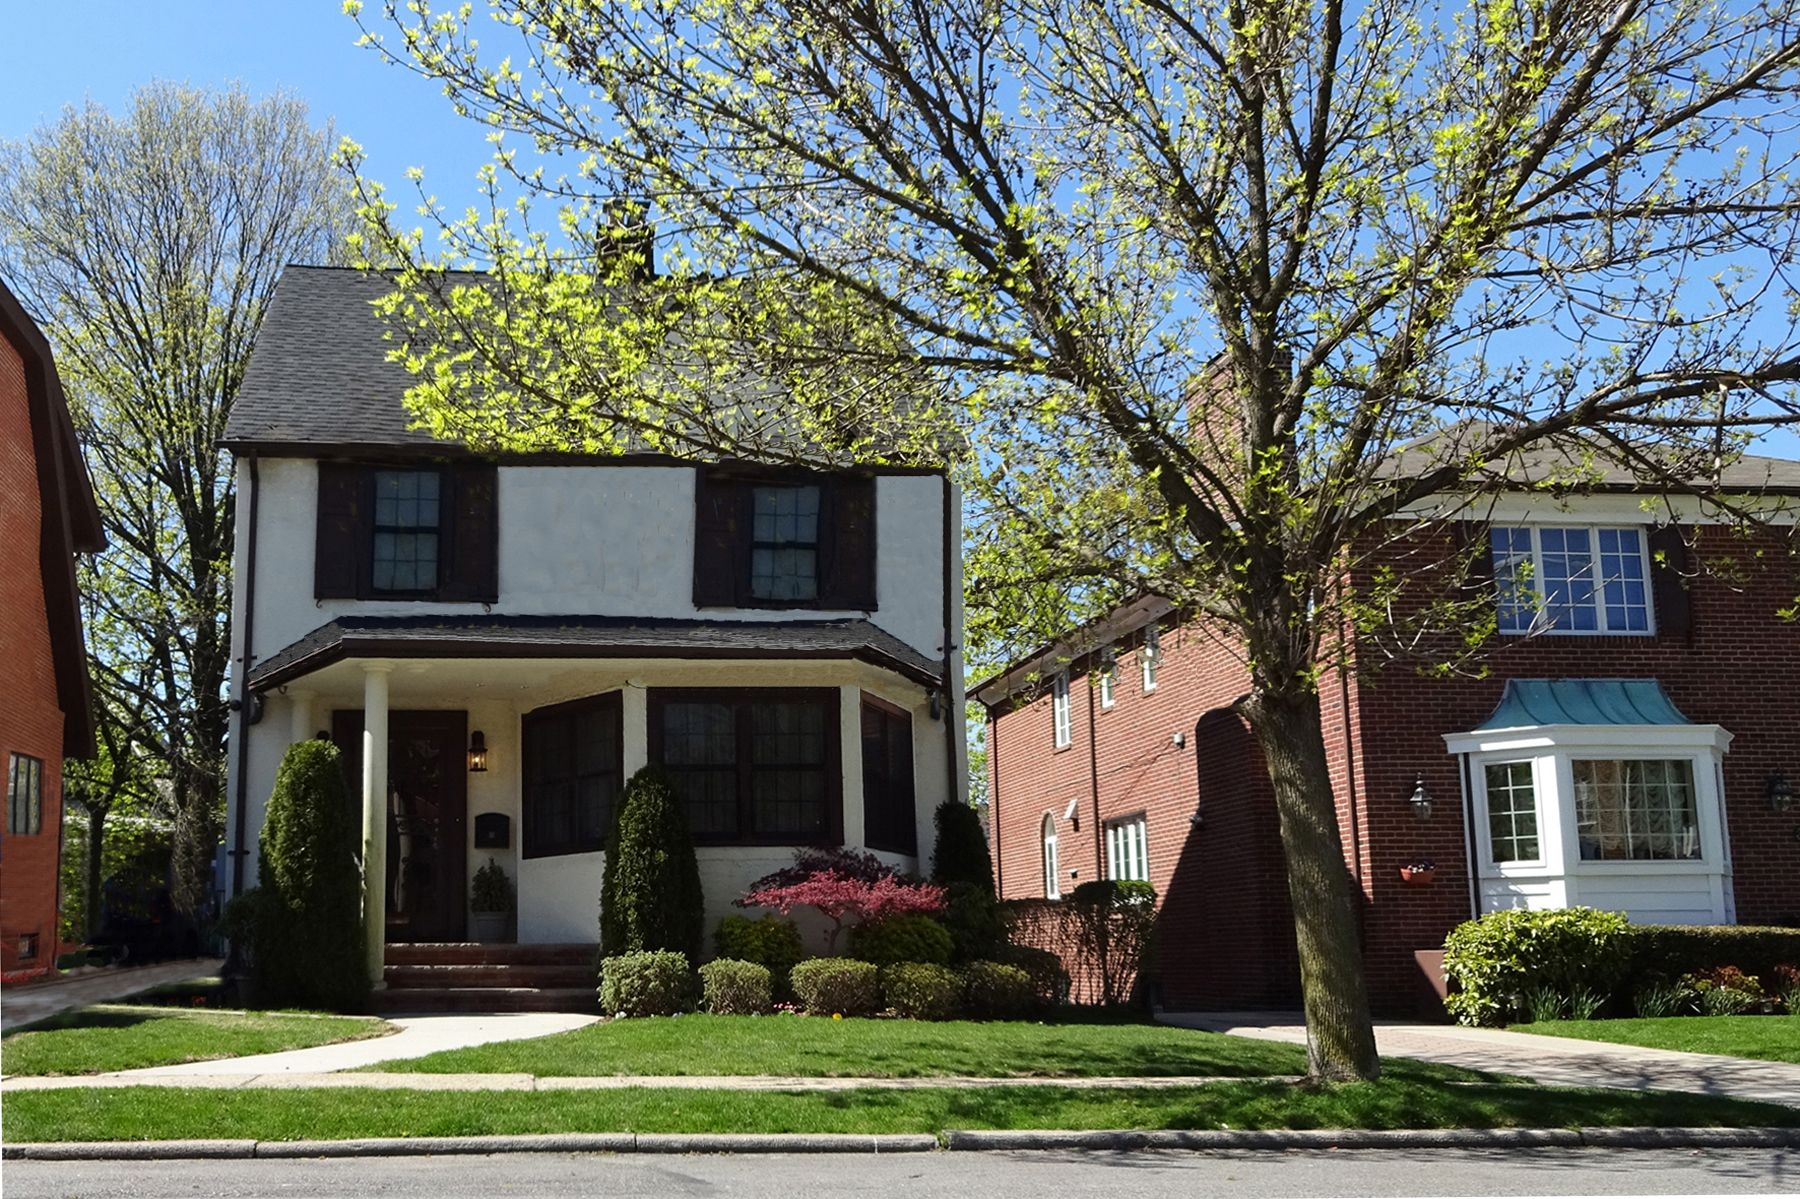 """Single Family Home for Sale at """"METICULOUS RESTORATION IN THE HEART OF VAN COURT"""" 69-36 Harrow Street, Forest Hills, New York 11375 United States"""